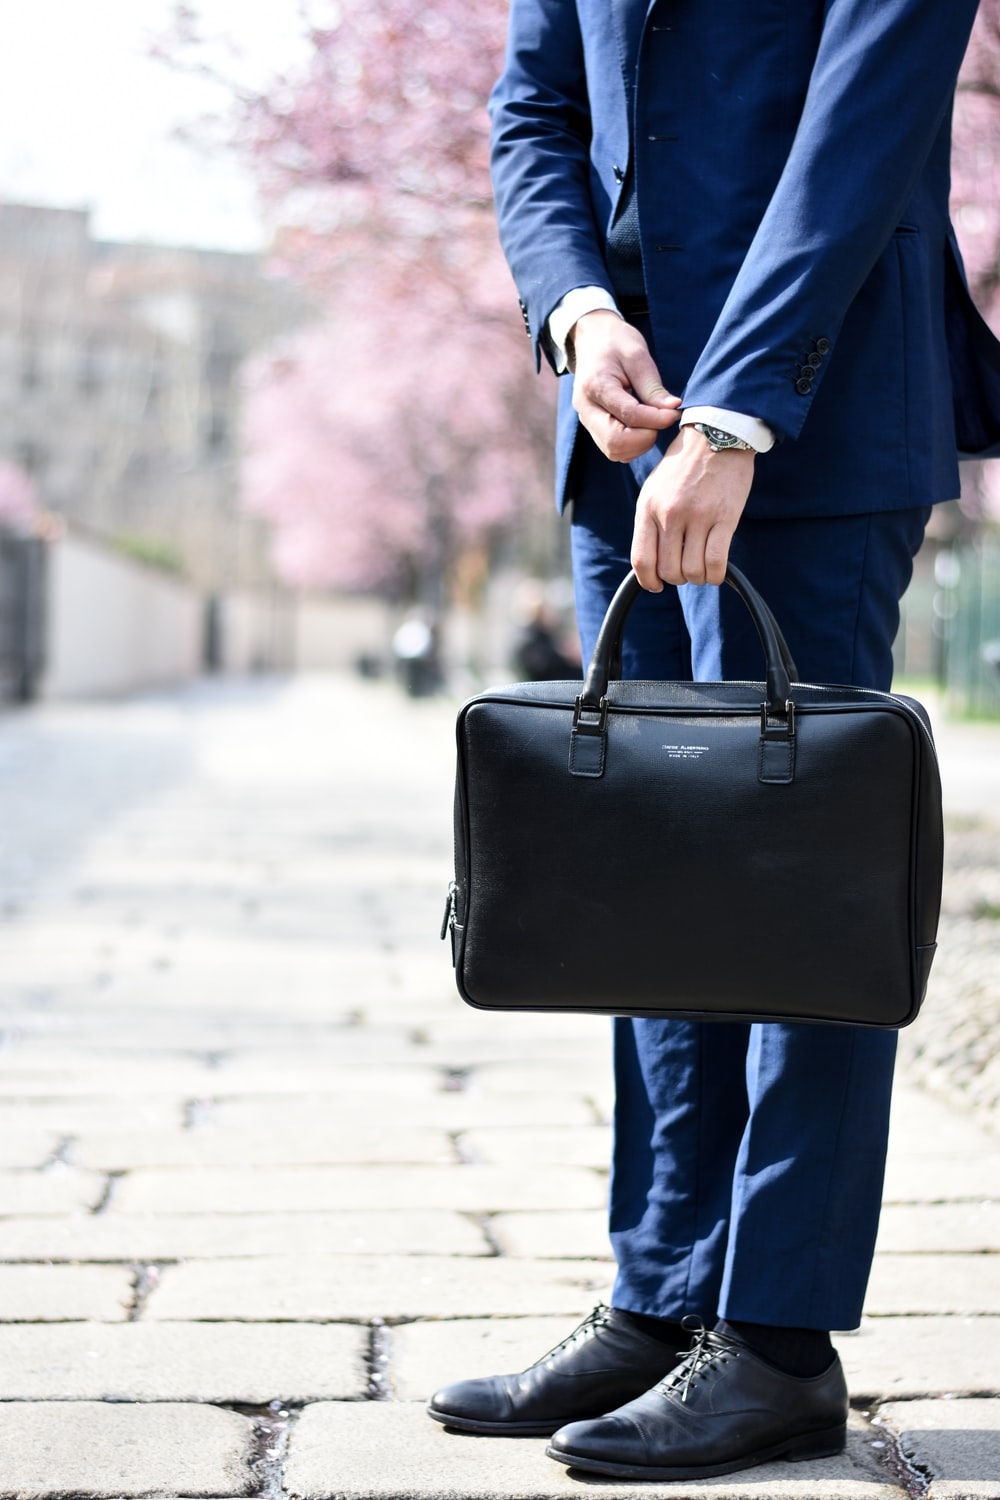 man in blue suit standing on street side while holding bag during daytime